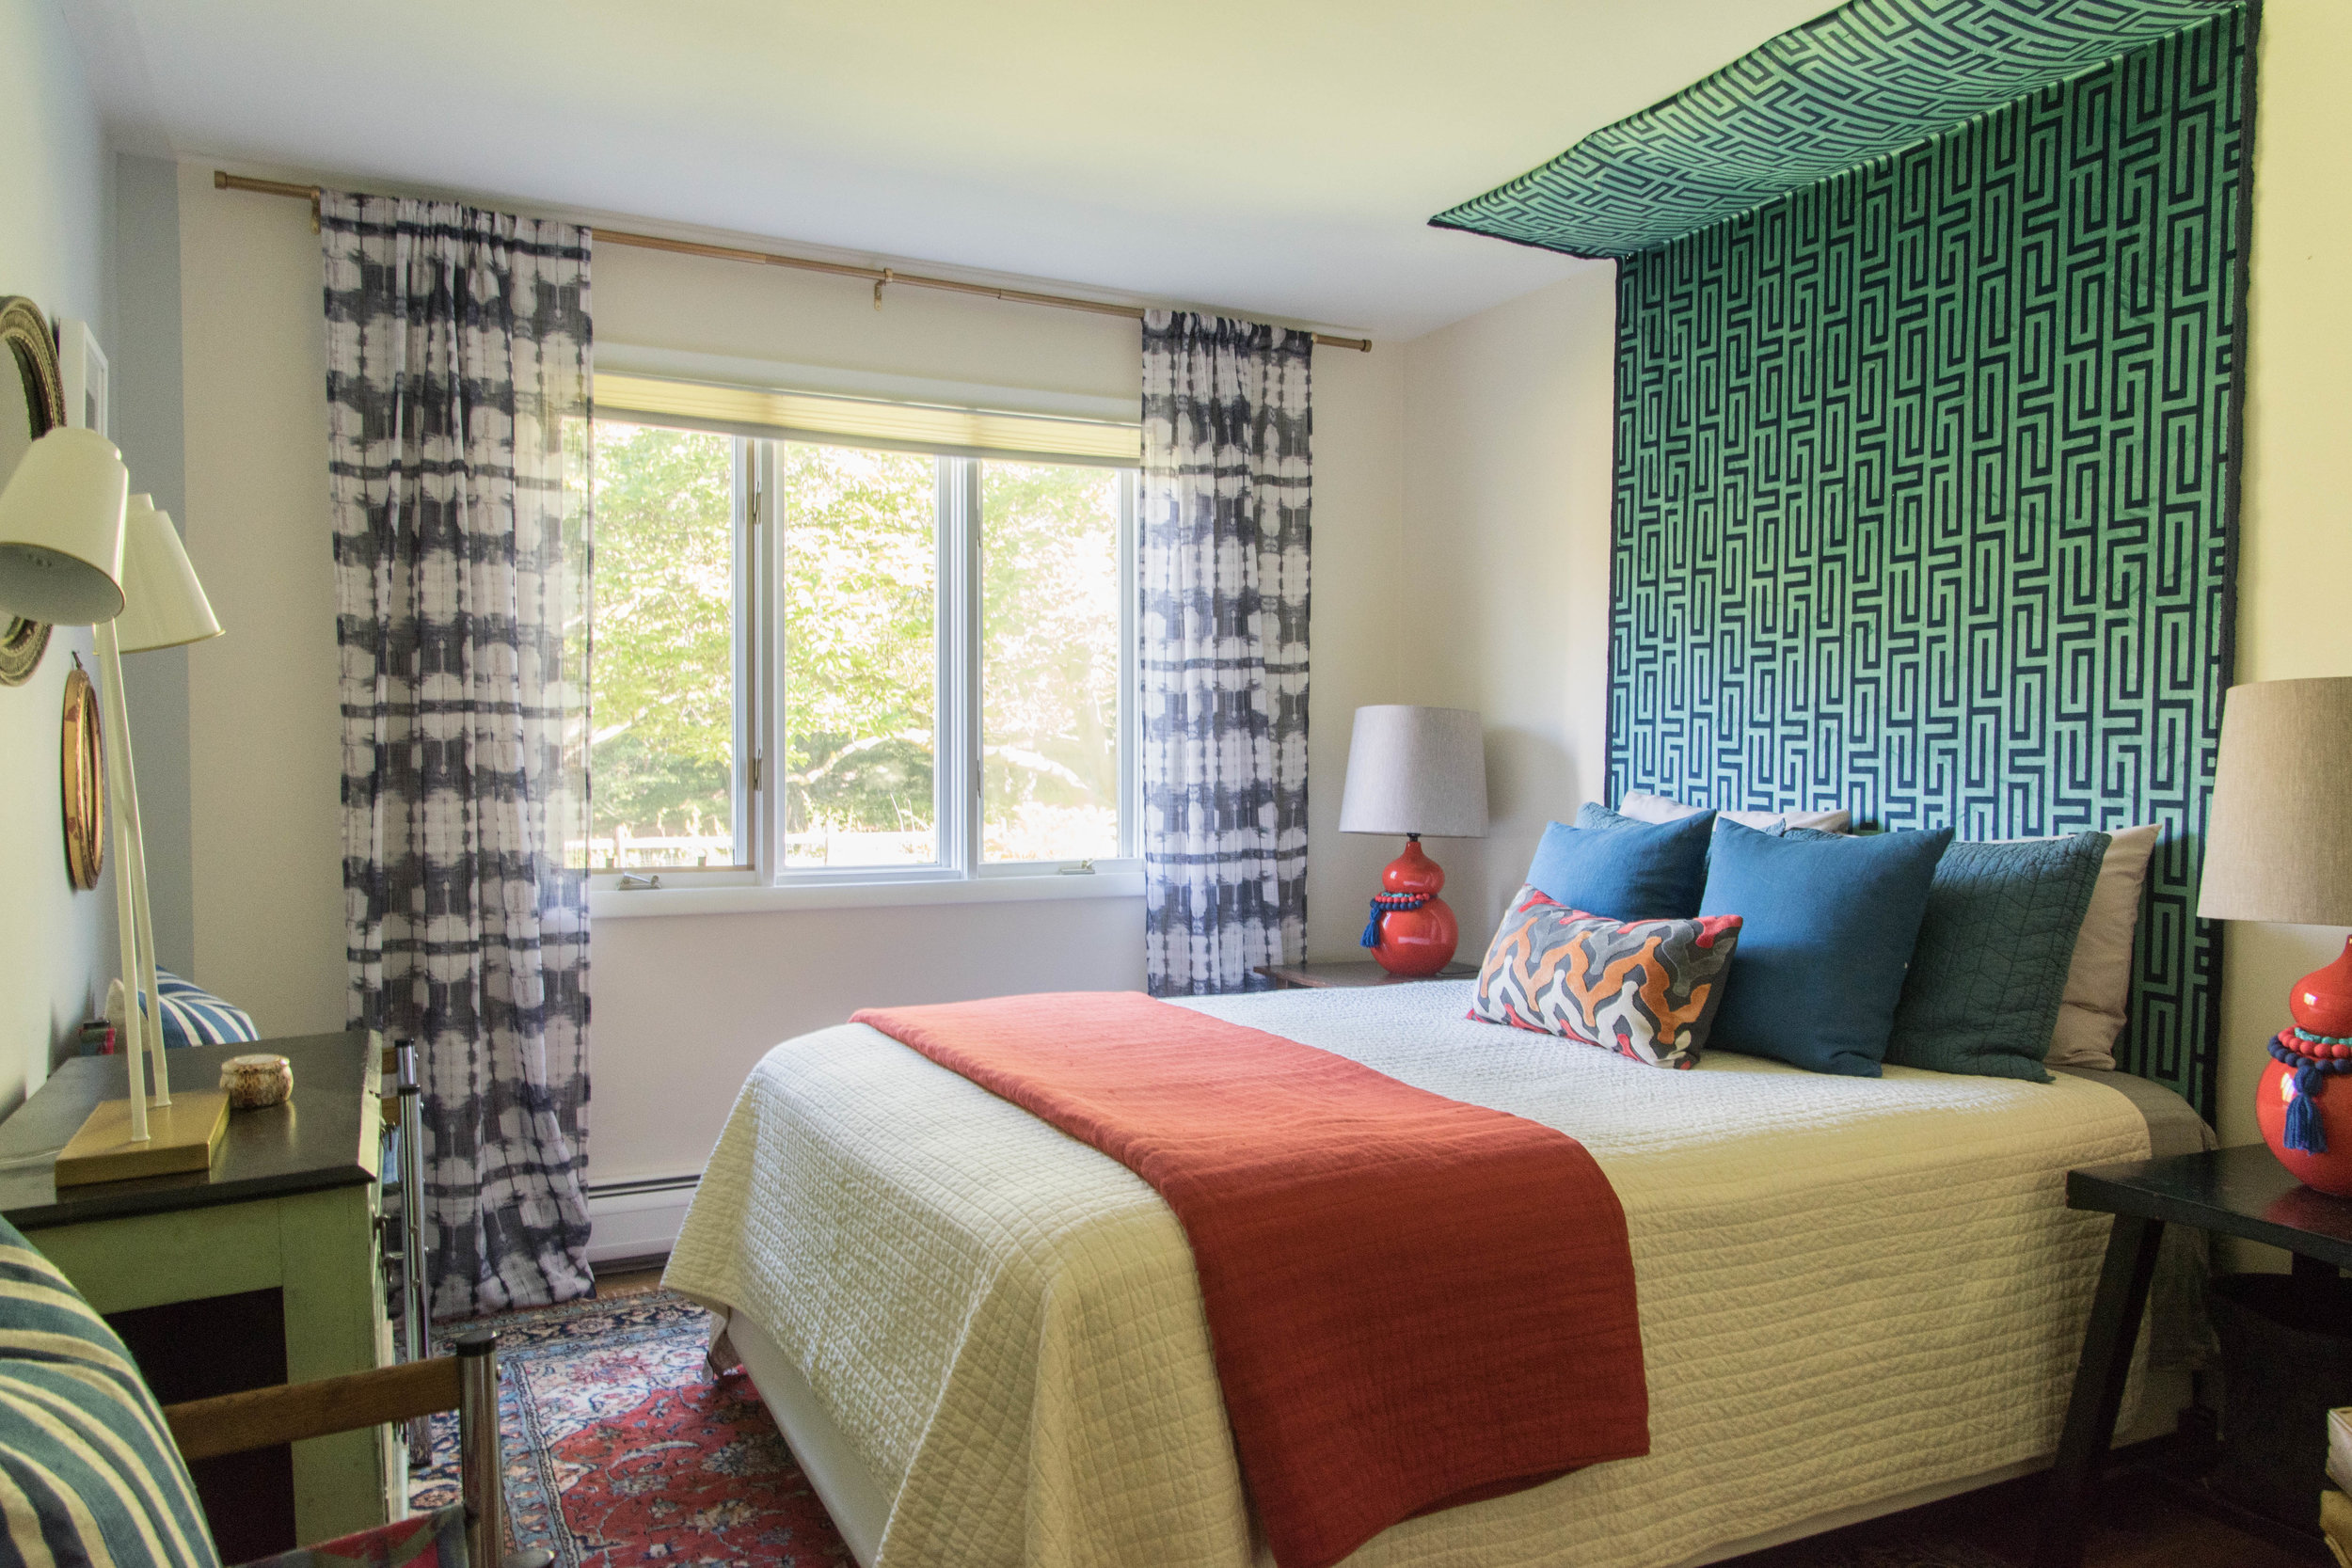 eclectic collected patterned colorful guest room remodel therathproject